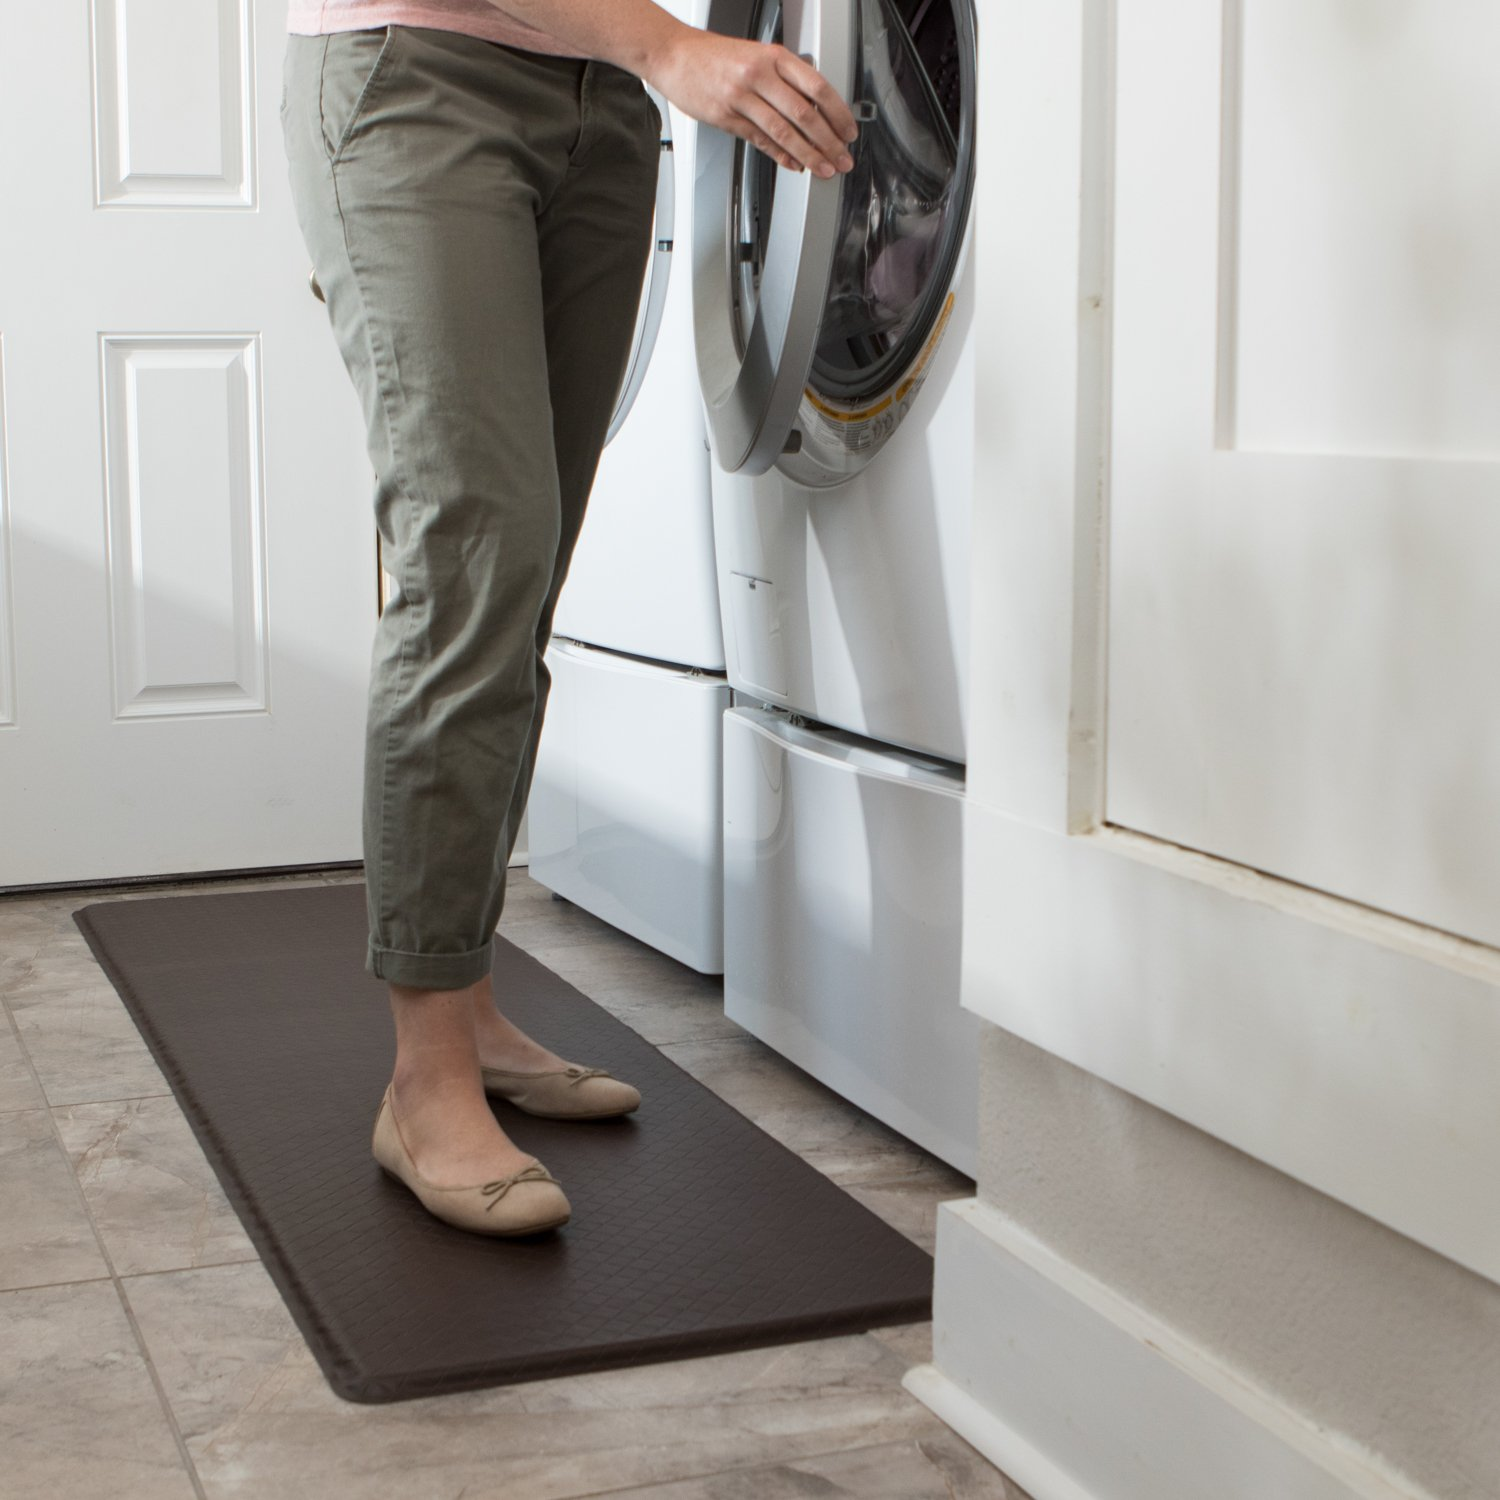 """GelPro Classic Anti-Fatigue Kitchen Comfort Chef Floor Mat, 20x72"""", Linen Cardinal Stain Resistant Surface with ½"""" gel core for health & wellness by GelPro (Image #7)"""